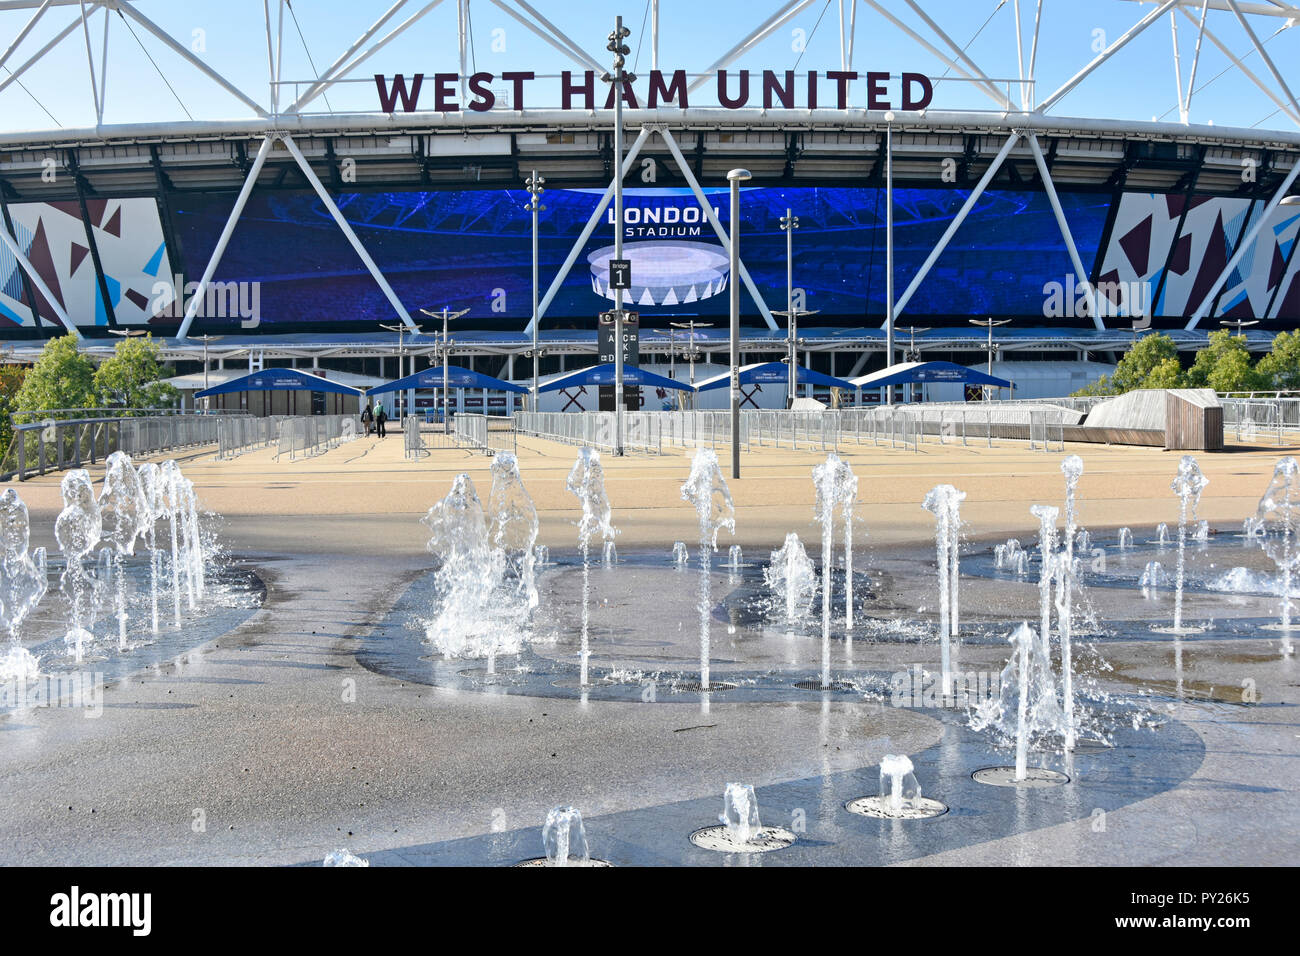 London Stadium sign on giant outdoor digital TV screen below West Ham United sign & play fountain in Queen Elizabeth Olympic park Stratford England UK - Stock Image